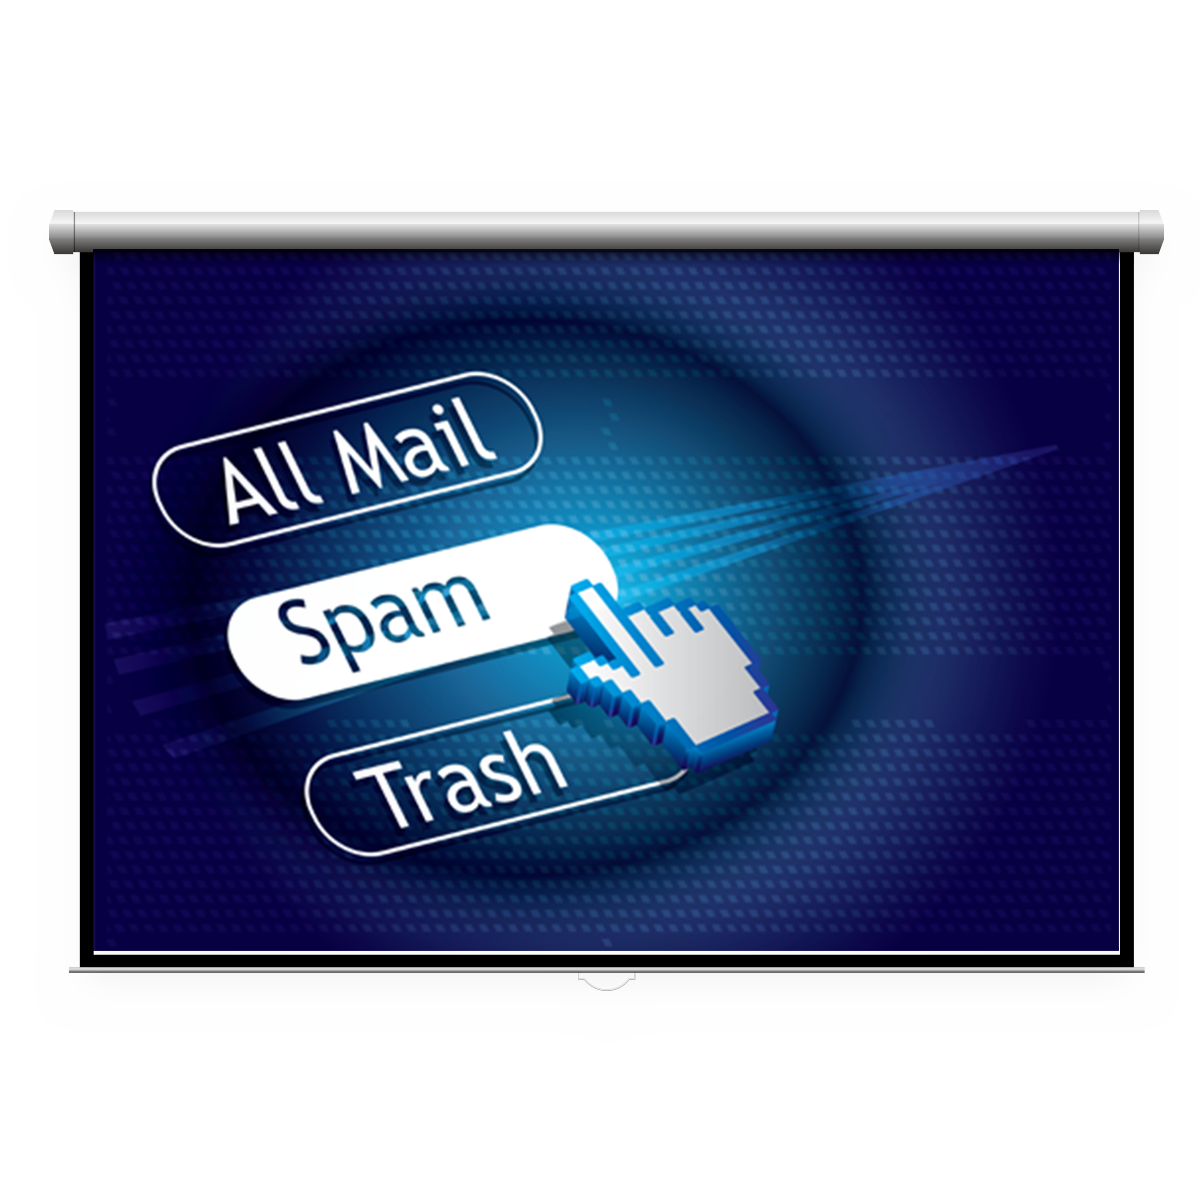 Anti-spam image